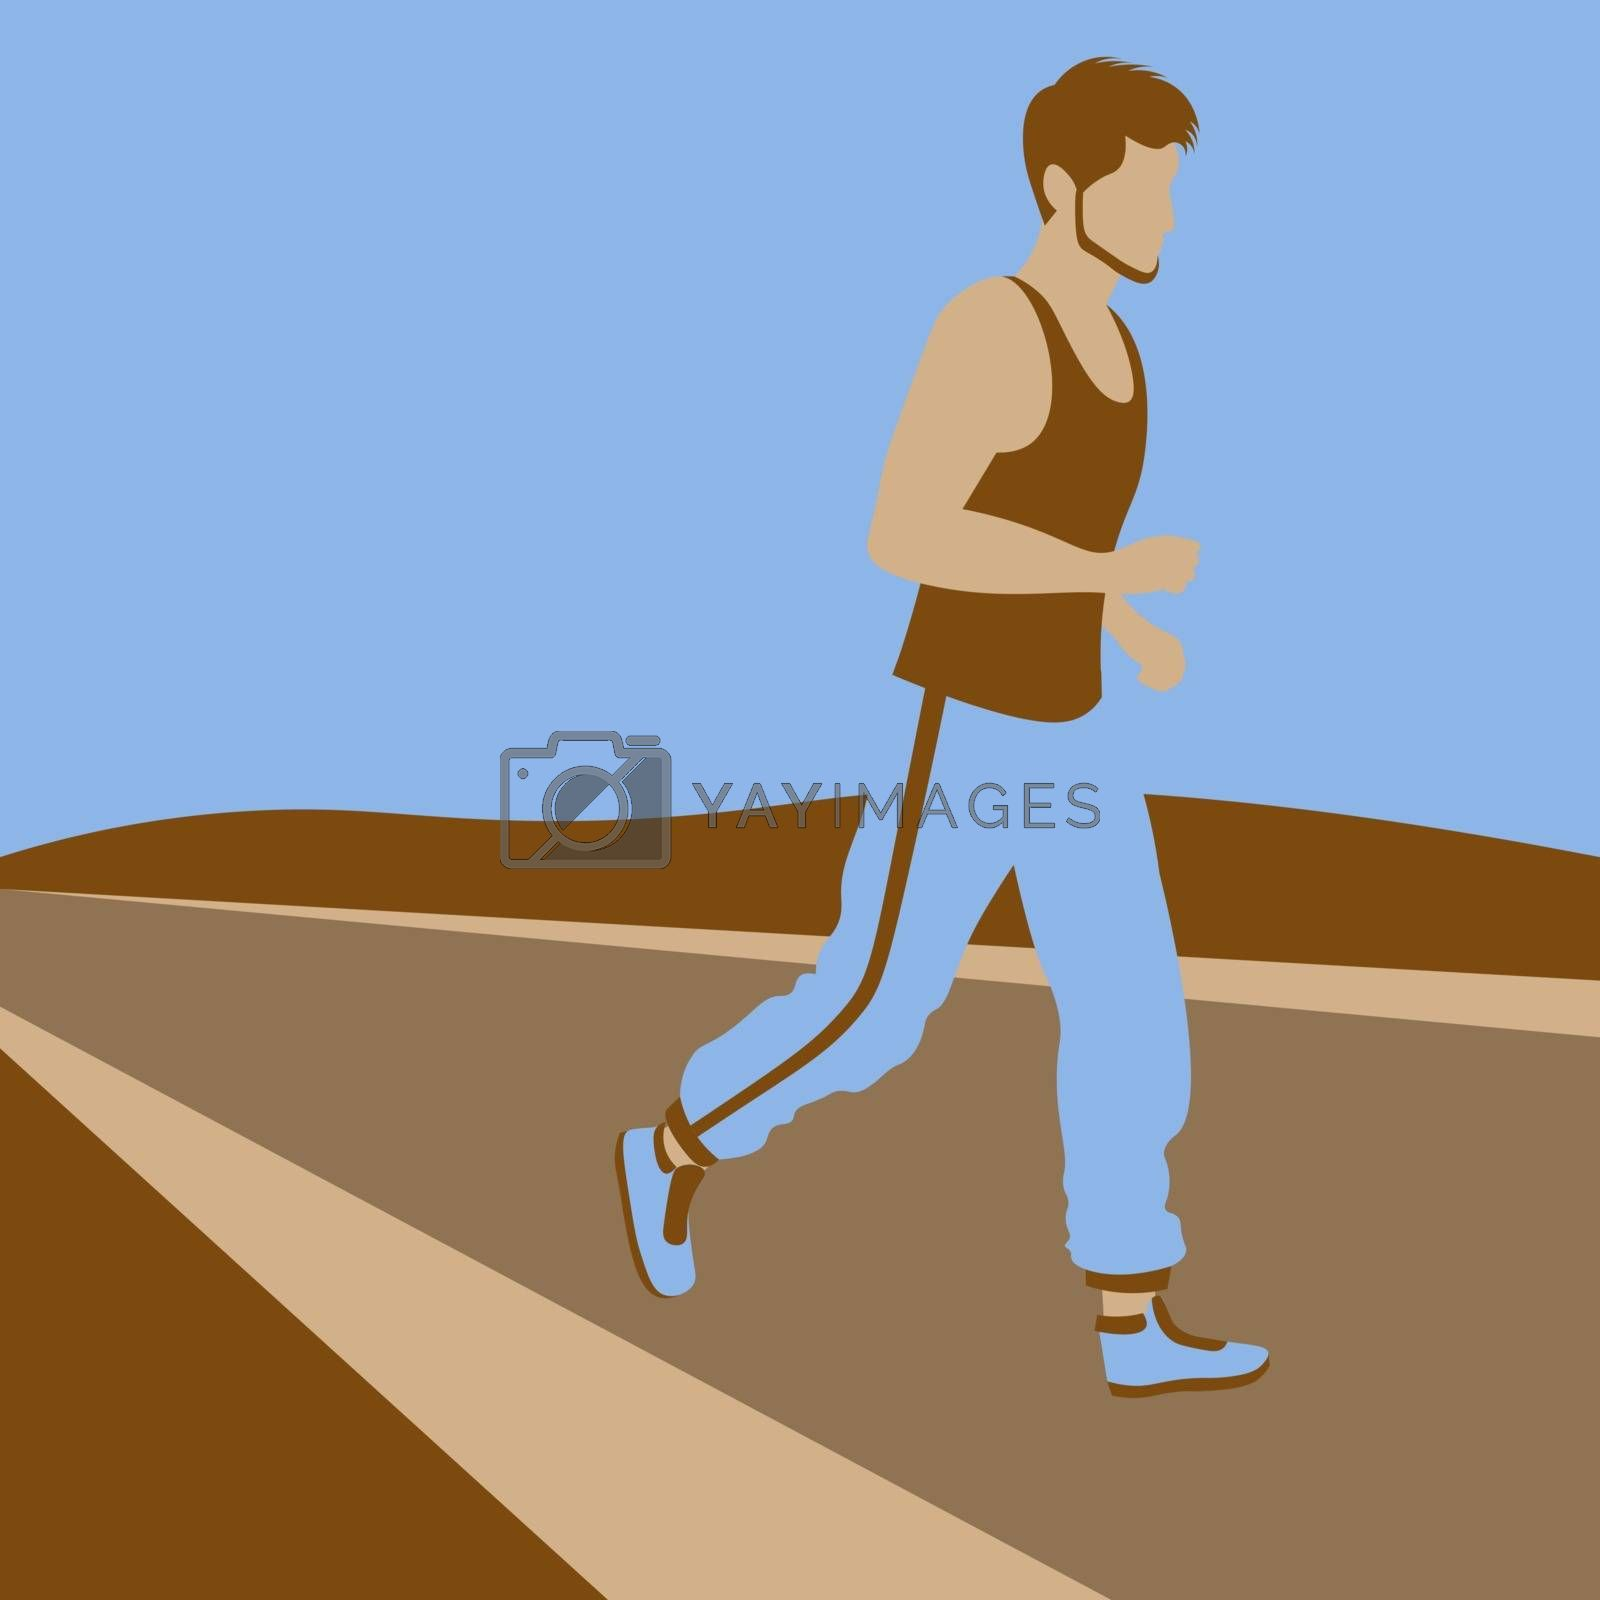 colorful vector illustration of faceless man in sportswear jogging outdoors